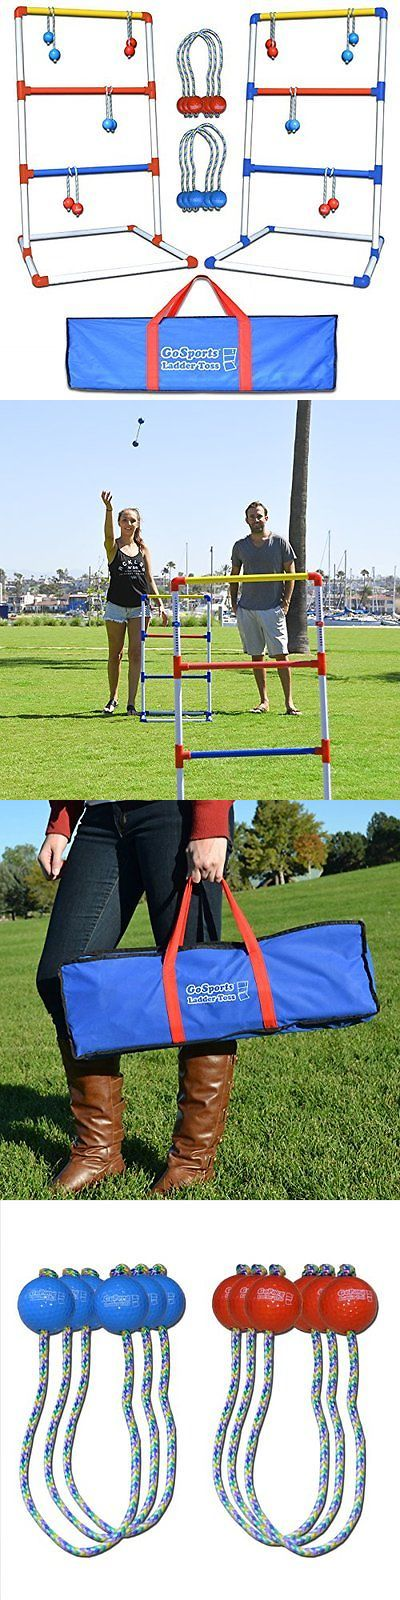 Other Backyard Games 159081: Gosports Premium Ladder Toss Game With 6 Bolos And Carrying Case New -> BUY IT NOW ONLY: $44.49 on eBay!